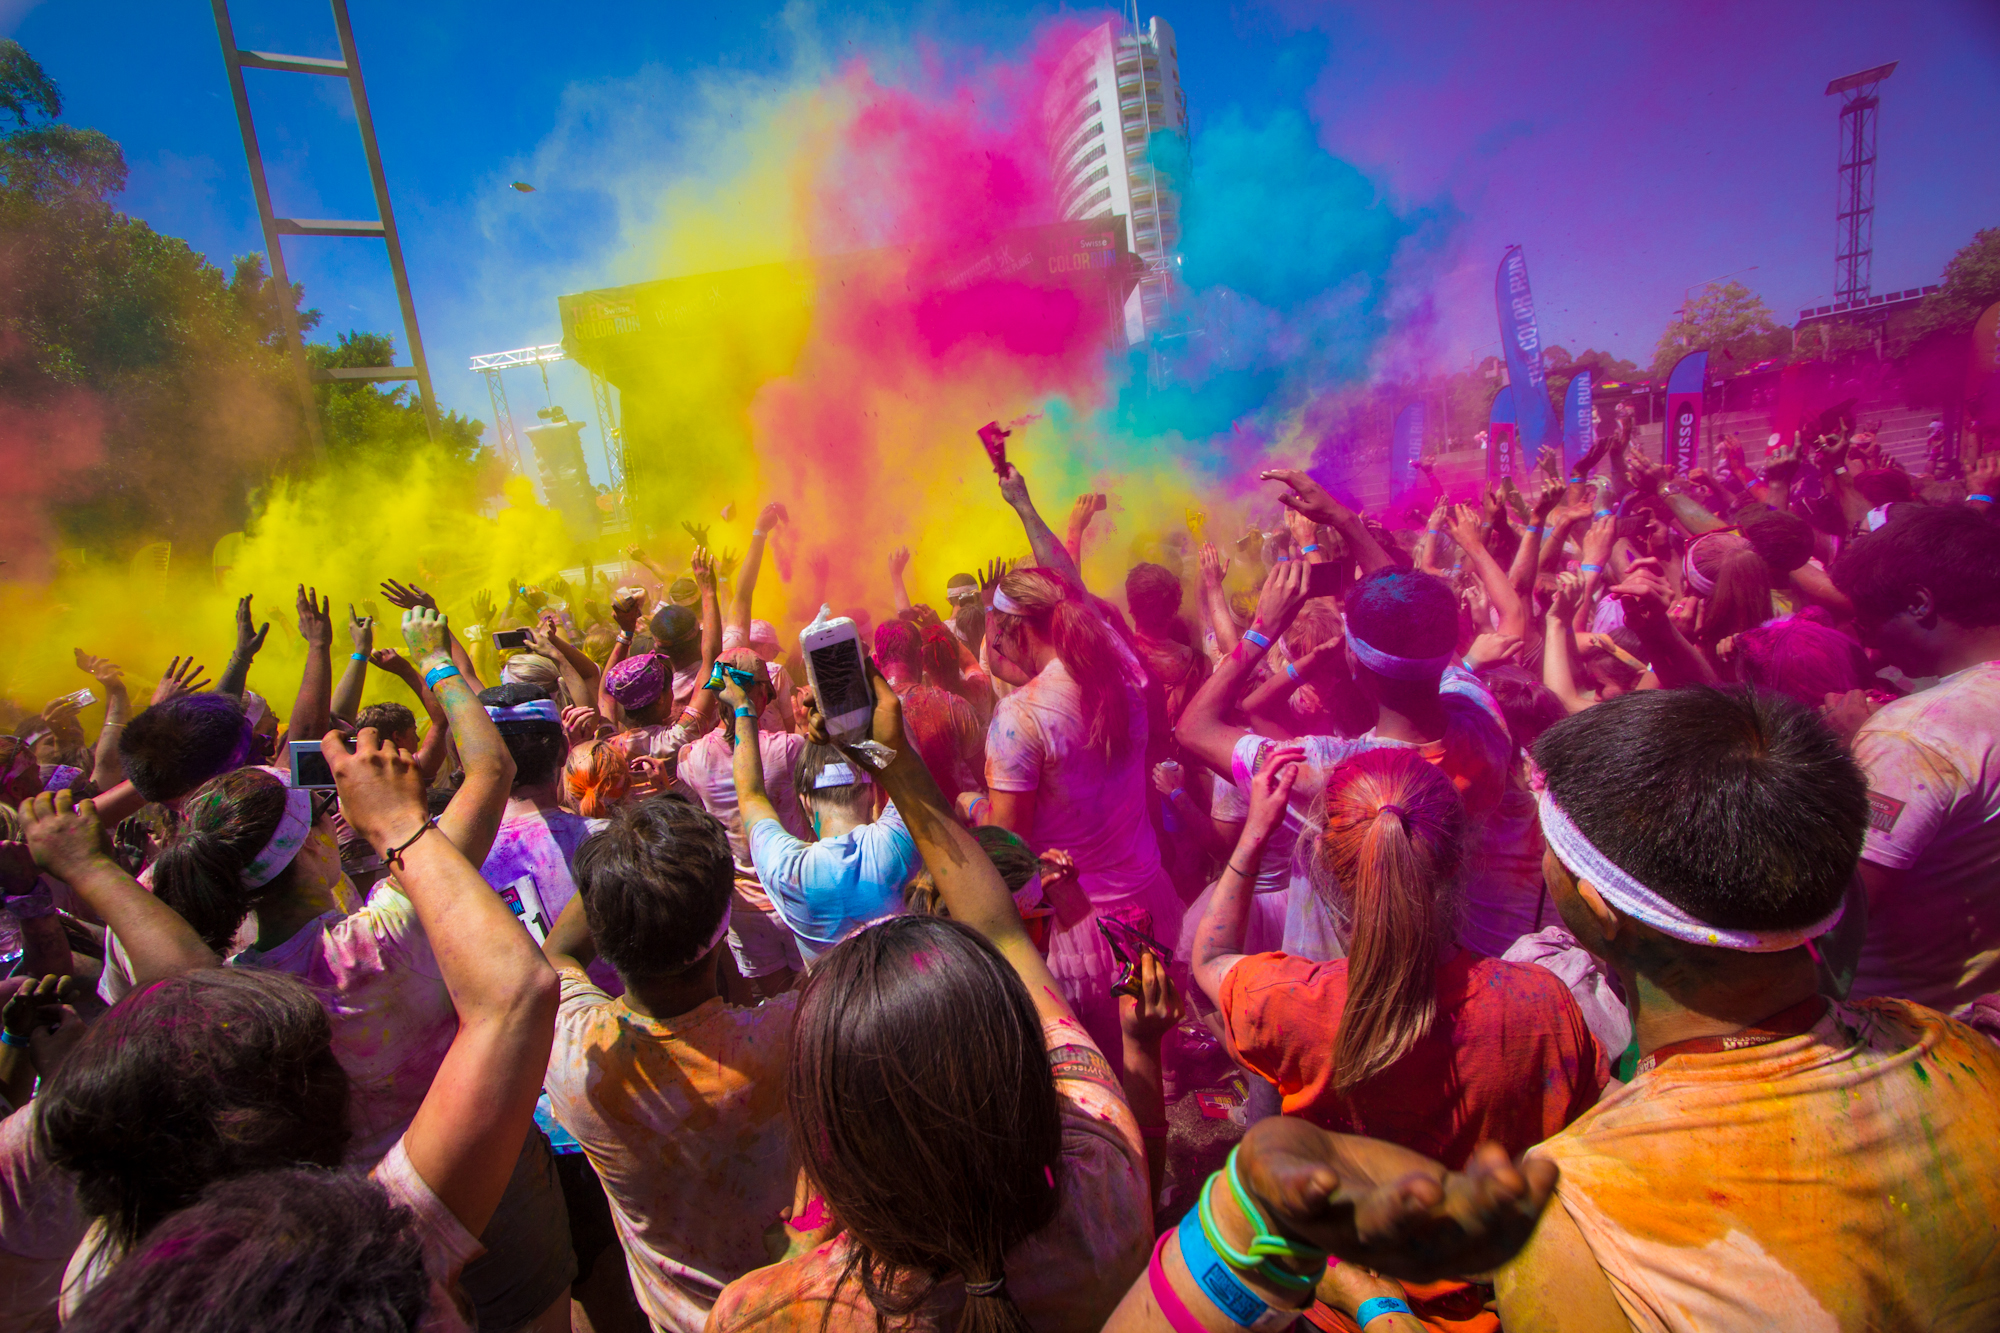 The Color Run is flying to Sydney on Sunday 7 October and bringing a whole heap of family fun! The Happiest 5k on the Planet zooms into Sydney Olympic Park with a brand new hero-themed tour, supersized Color Zones and a limited edition participant pack complete with a unicorn medal.